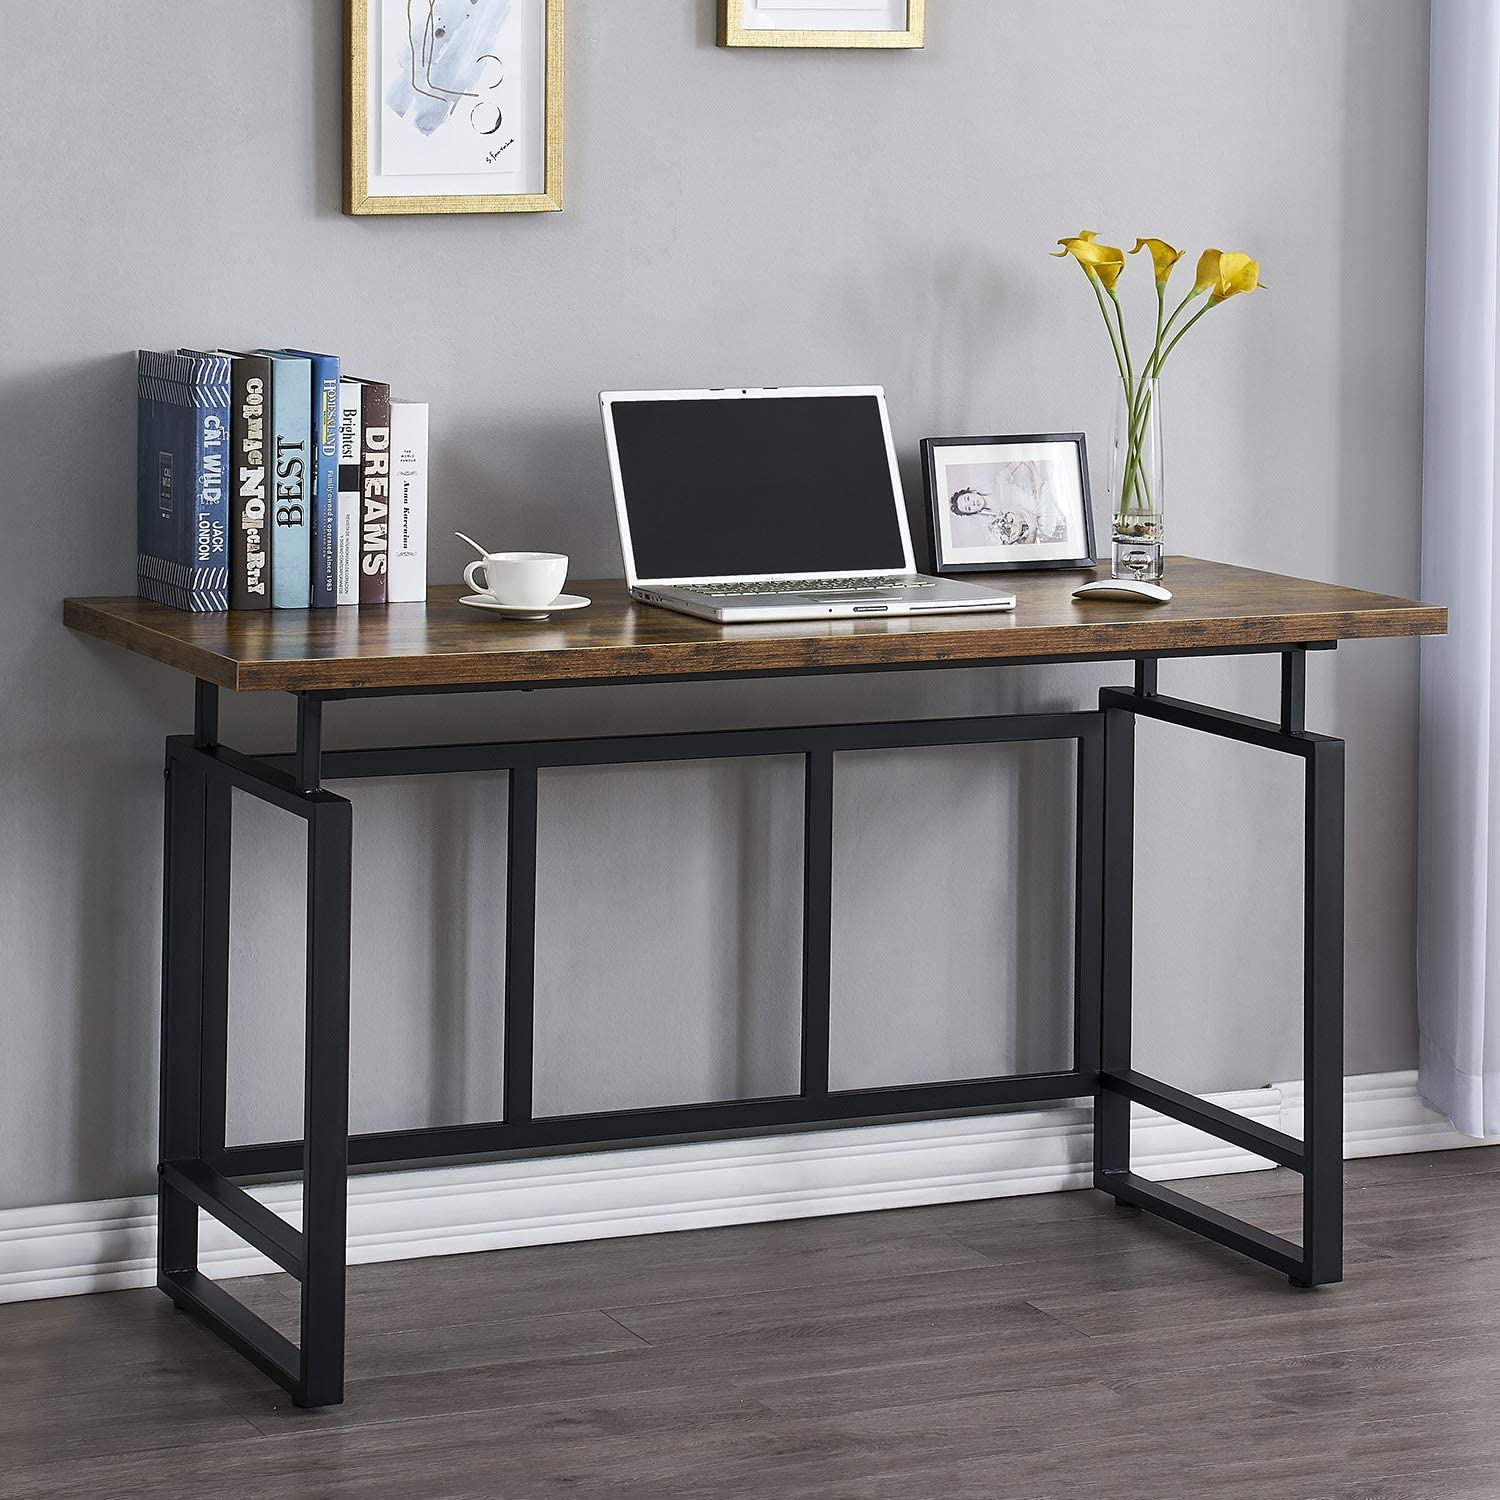 """Mneetrung Home Office Popular shop is the lowest price challenge Desk 55"""" Be super welcome Computer Stud Industrial Writing"""